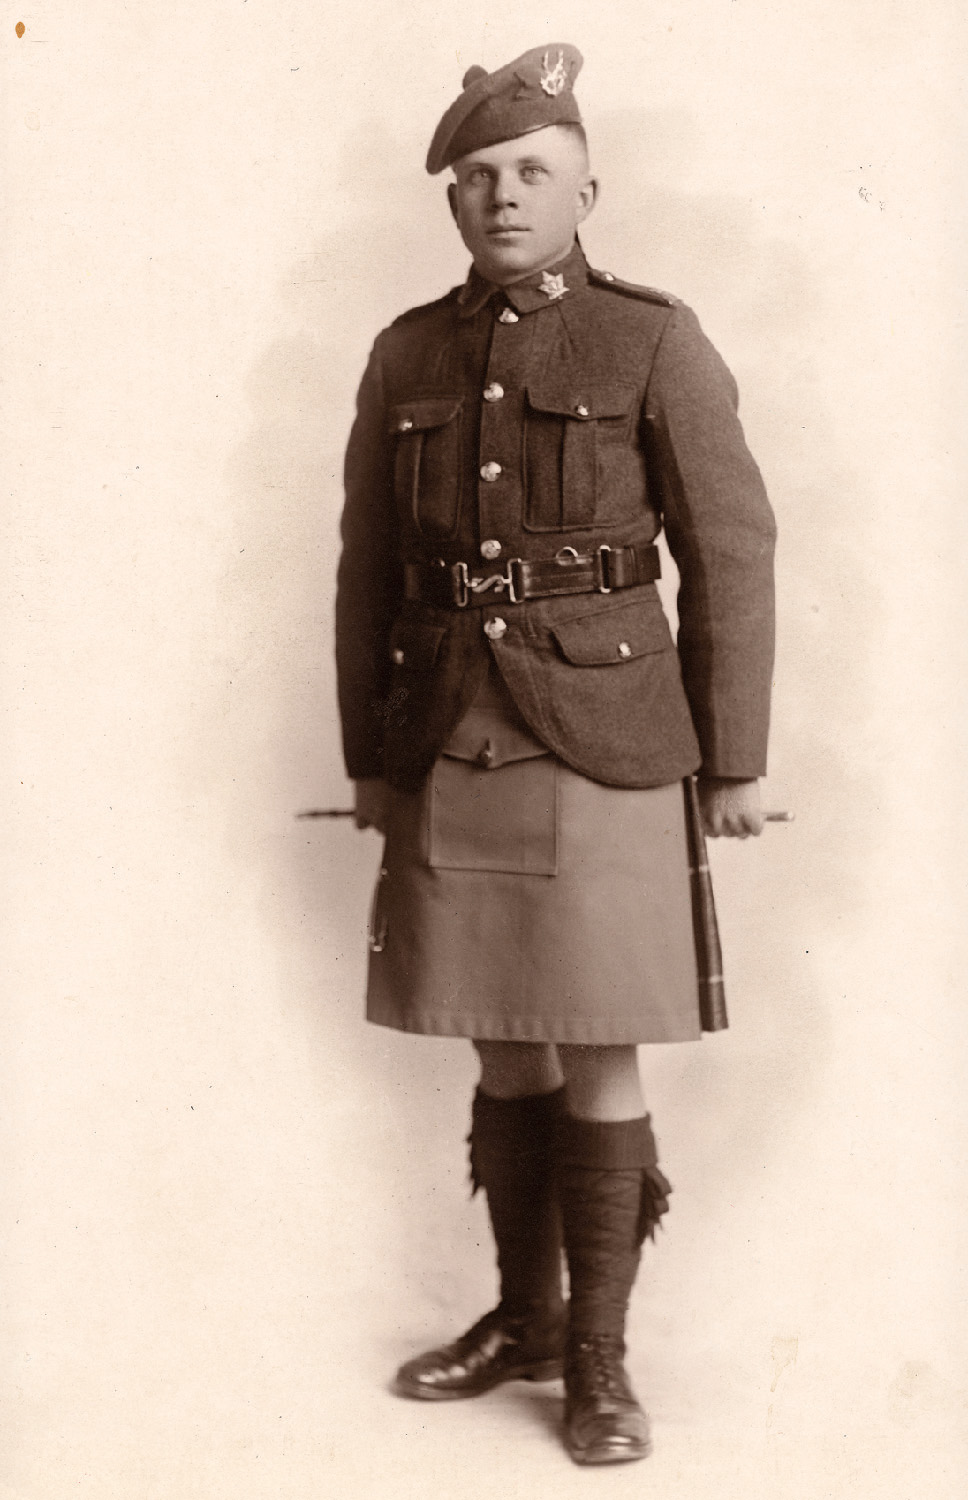 """Private Charles Durfee Harper was wounded as he advanced with 'B' Company toward Crest Farm, and was later buried alive by German shell-fire. The Battle of Passchendaele left him with severe and permanent shell-shock.  A year after the battle, he wrote his father that at Passchendaele, """"hell yawned and we went over the top into what was the greatest concentration of enemy artillery ever known on the Western—or any other—front."""